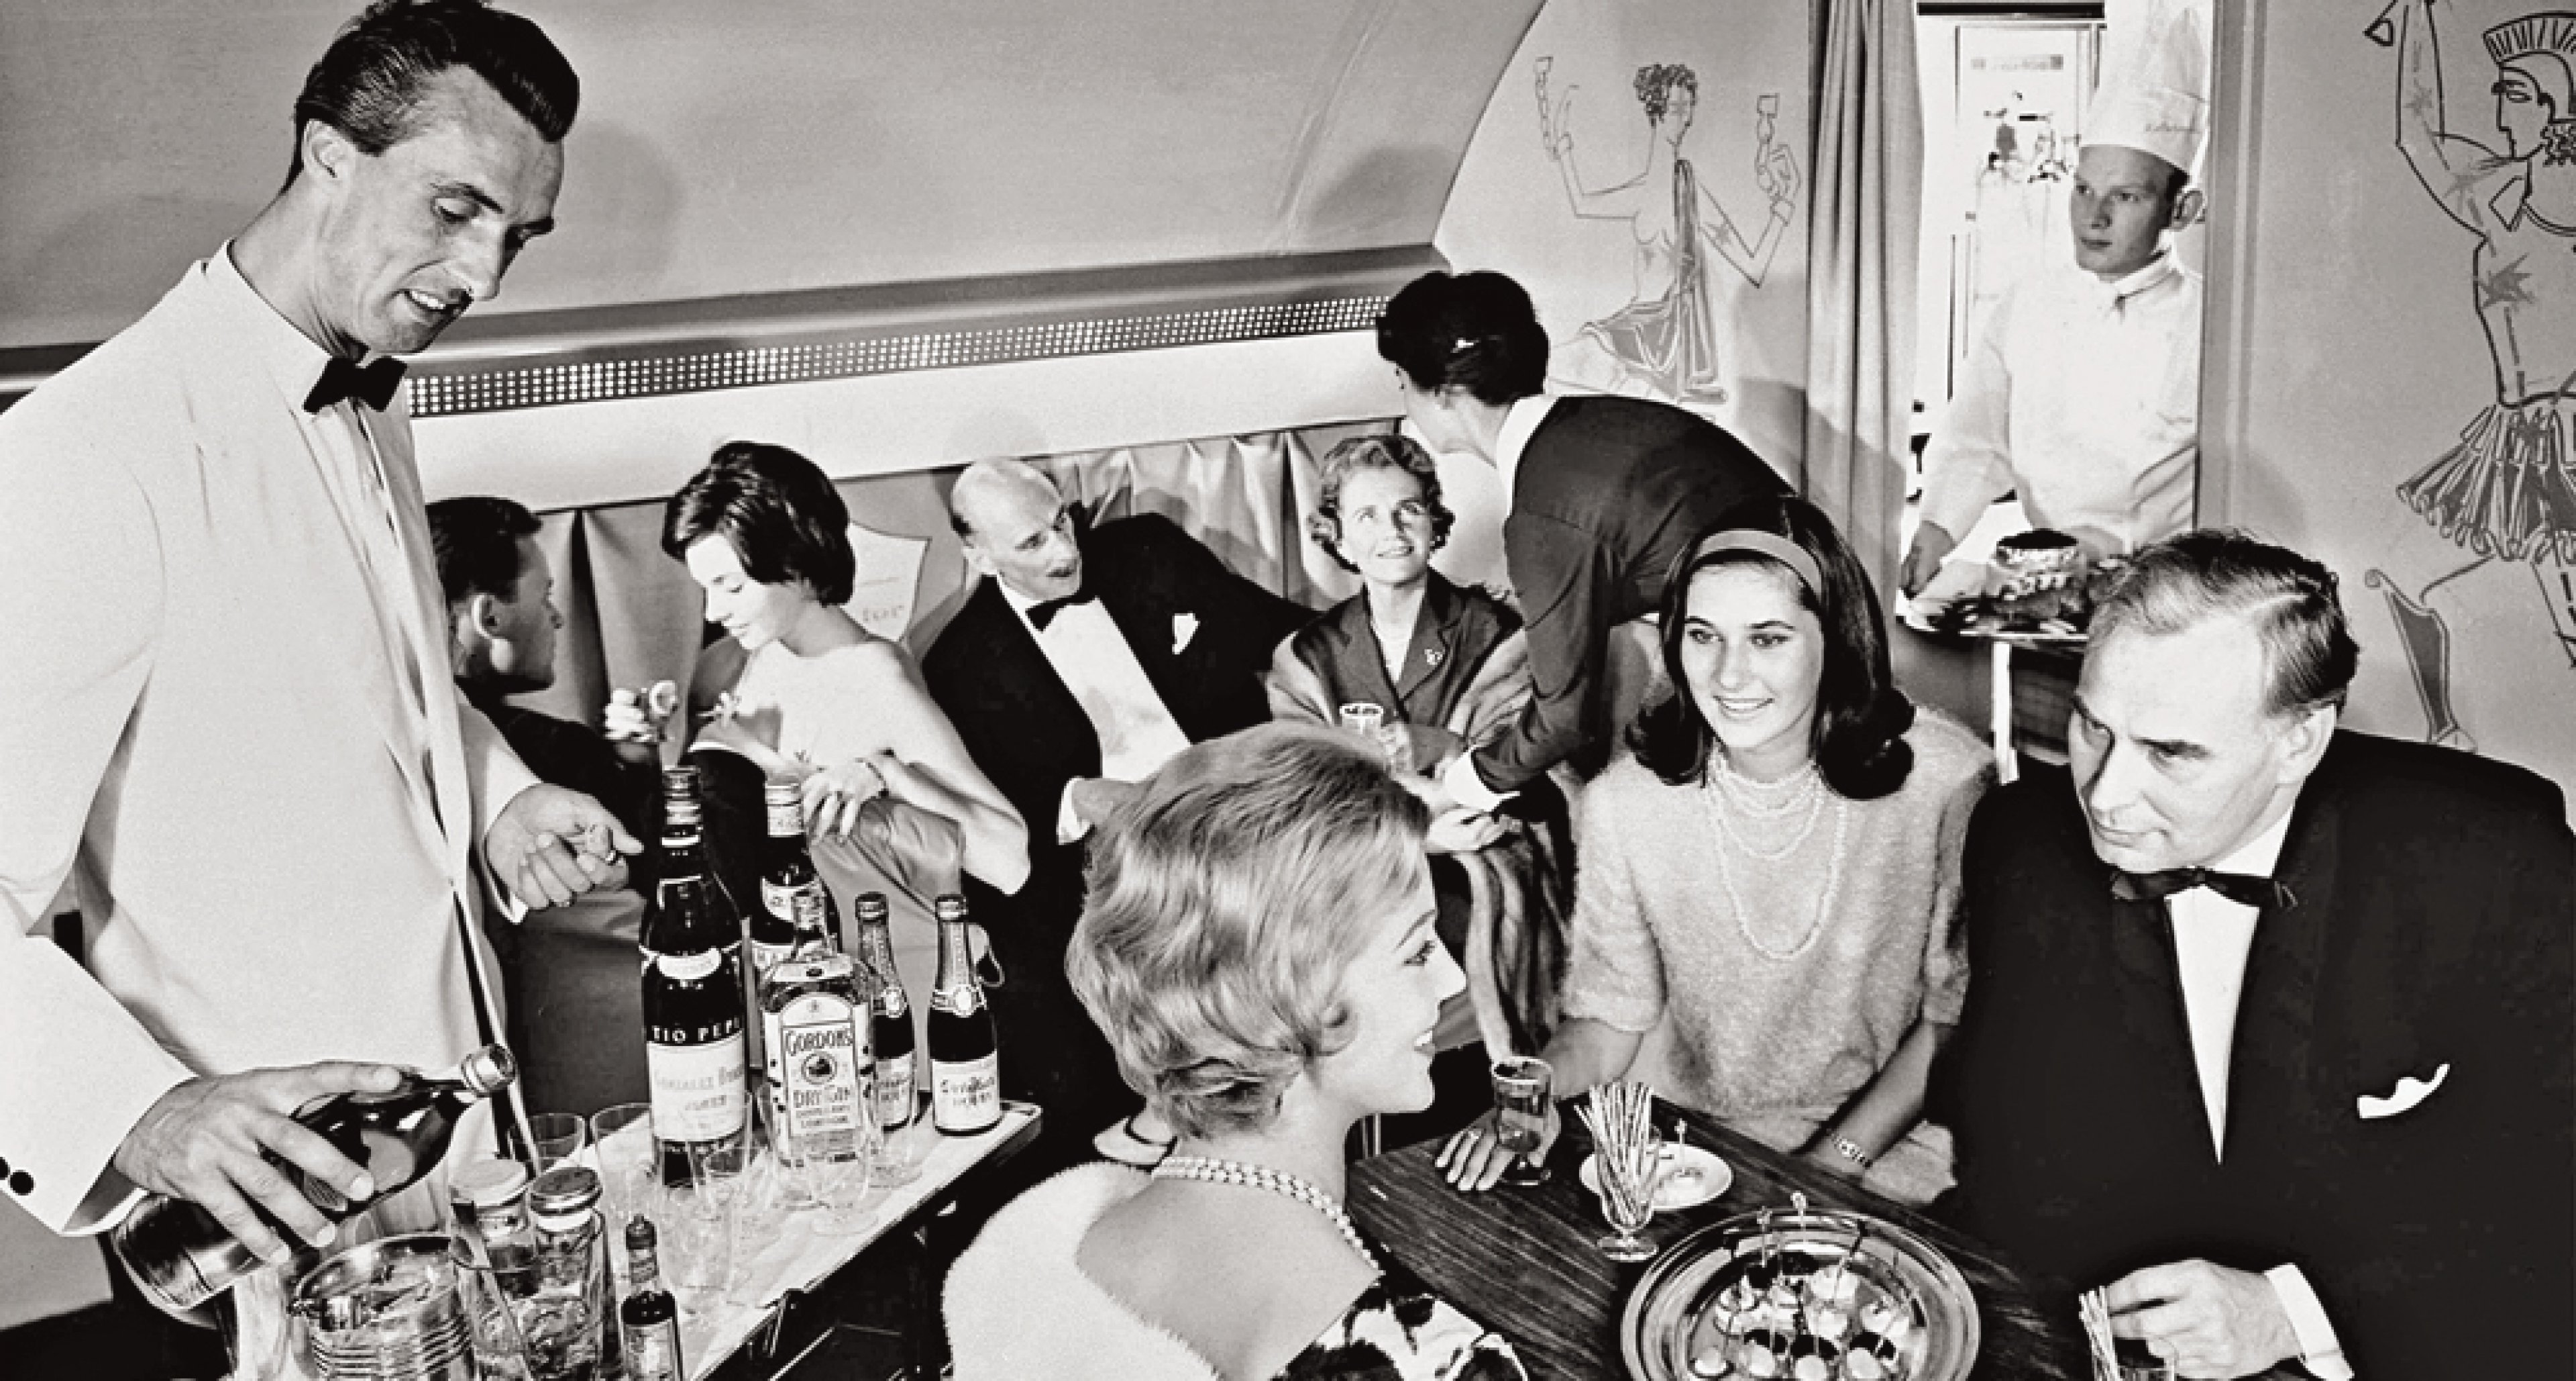 The Lufthansa Senator service offered a barman in an evening jacket and a bow tie mixing cocktails from behind his rolling bar. © courtesy Lufthansa Archive